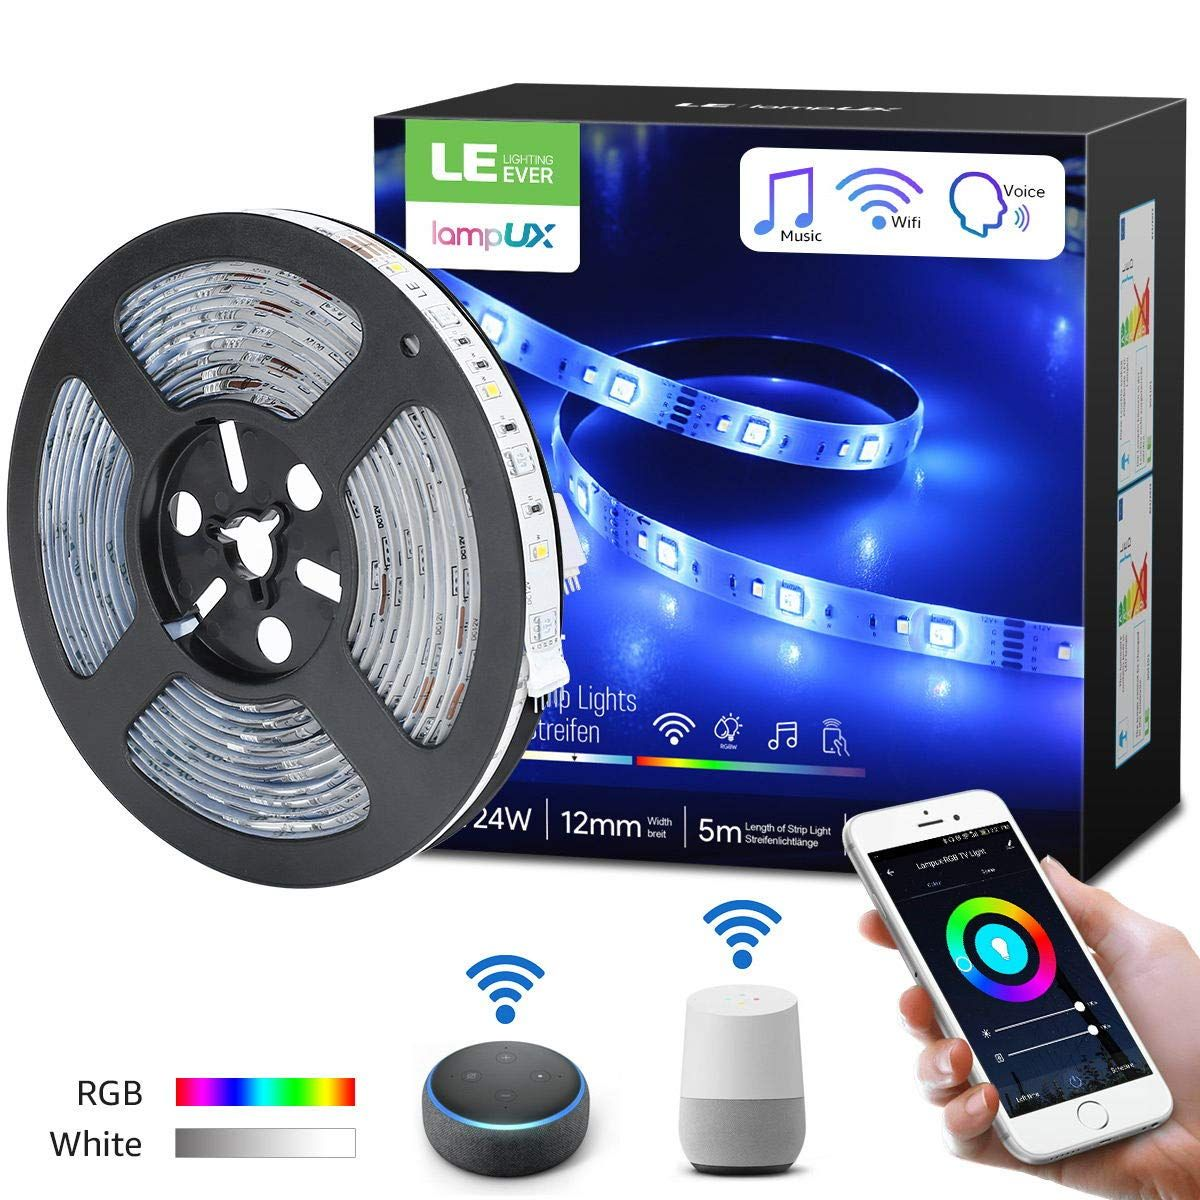 How to improve living experience at home? LE smart RGB LED